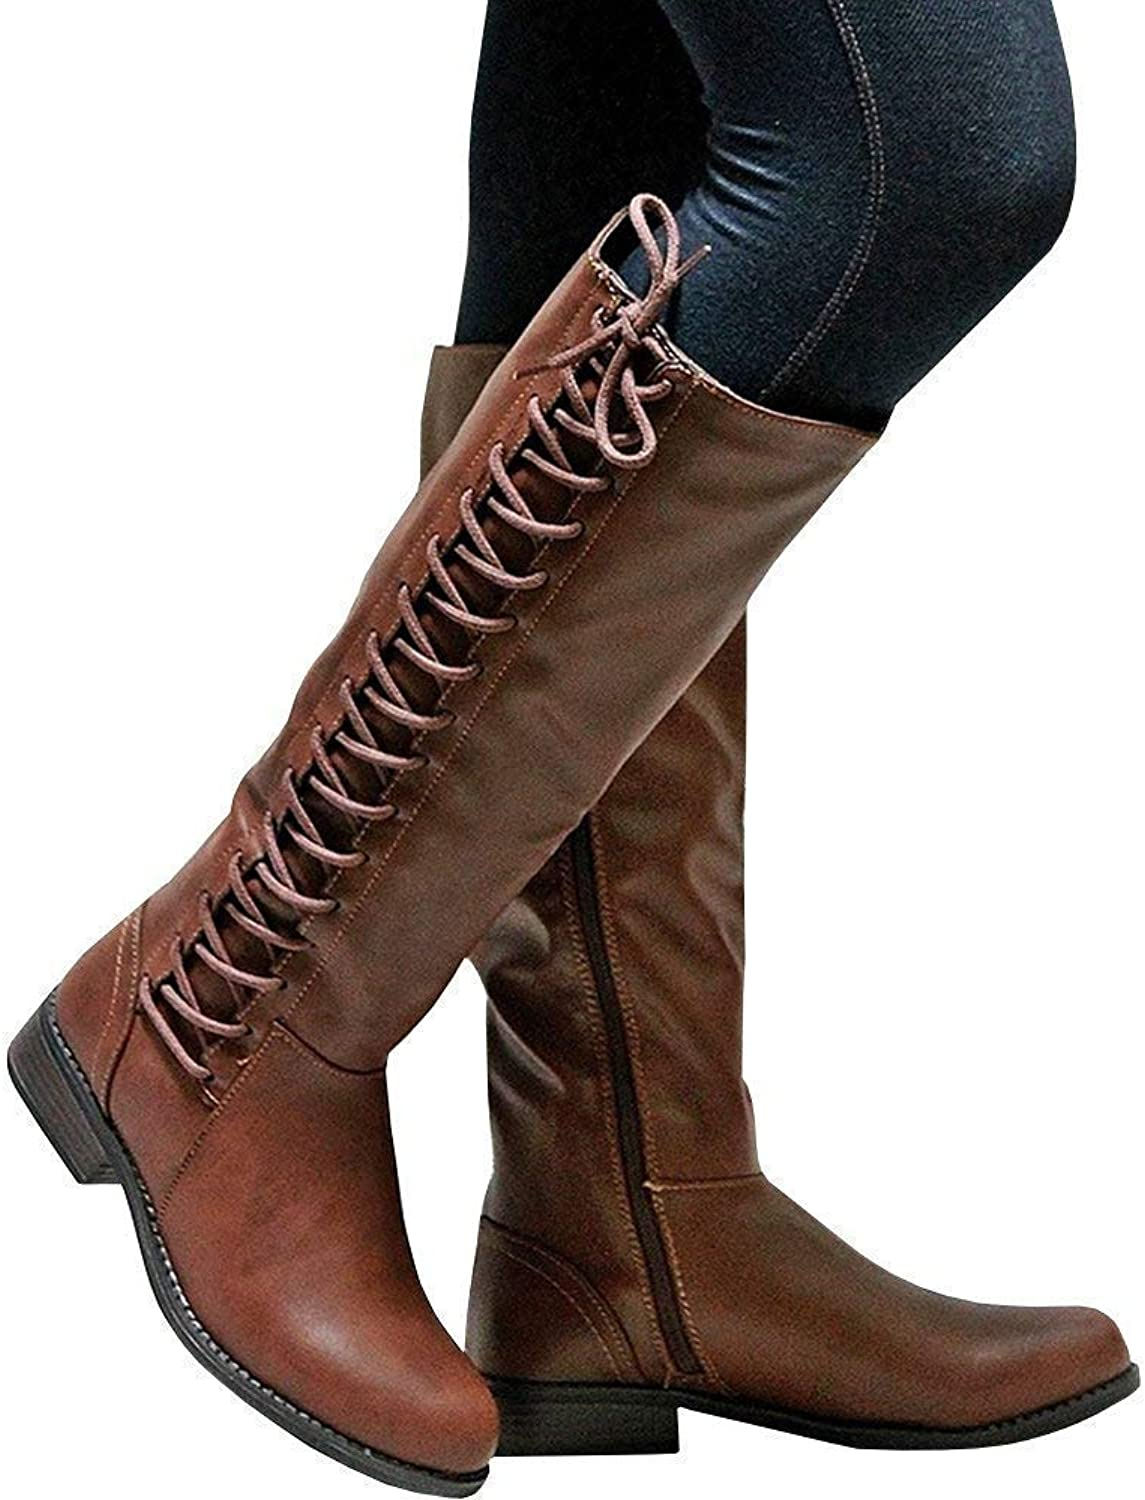 Womens Knee High Boots Zip Riding Leather Flat Boots Lace Up Autumn shoes(-)